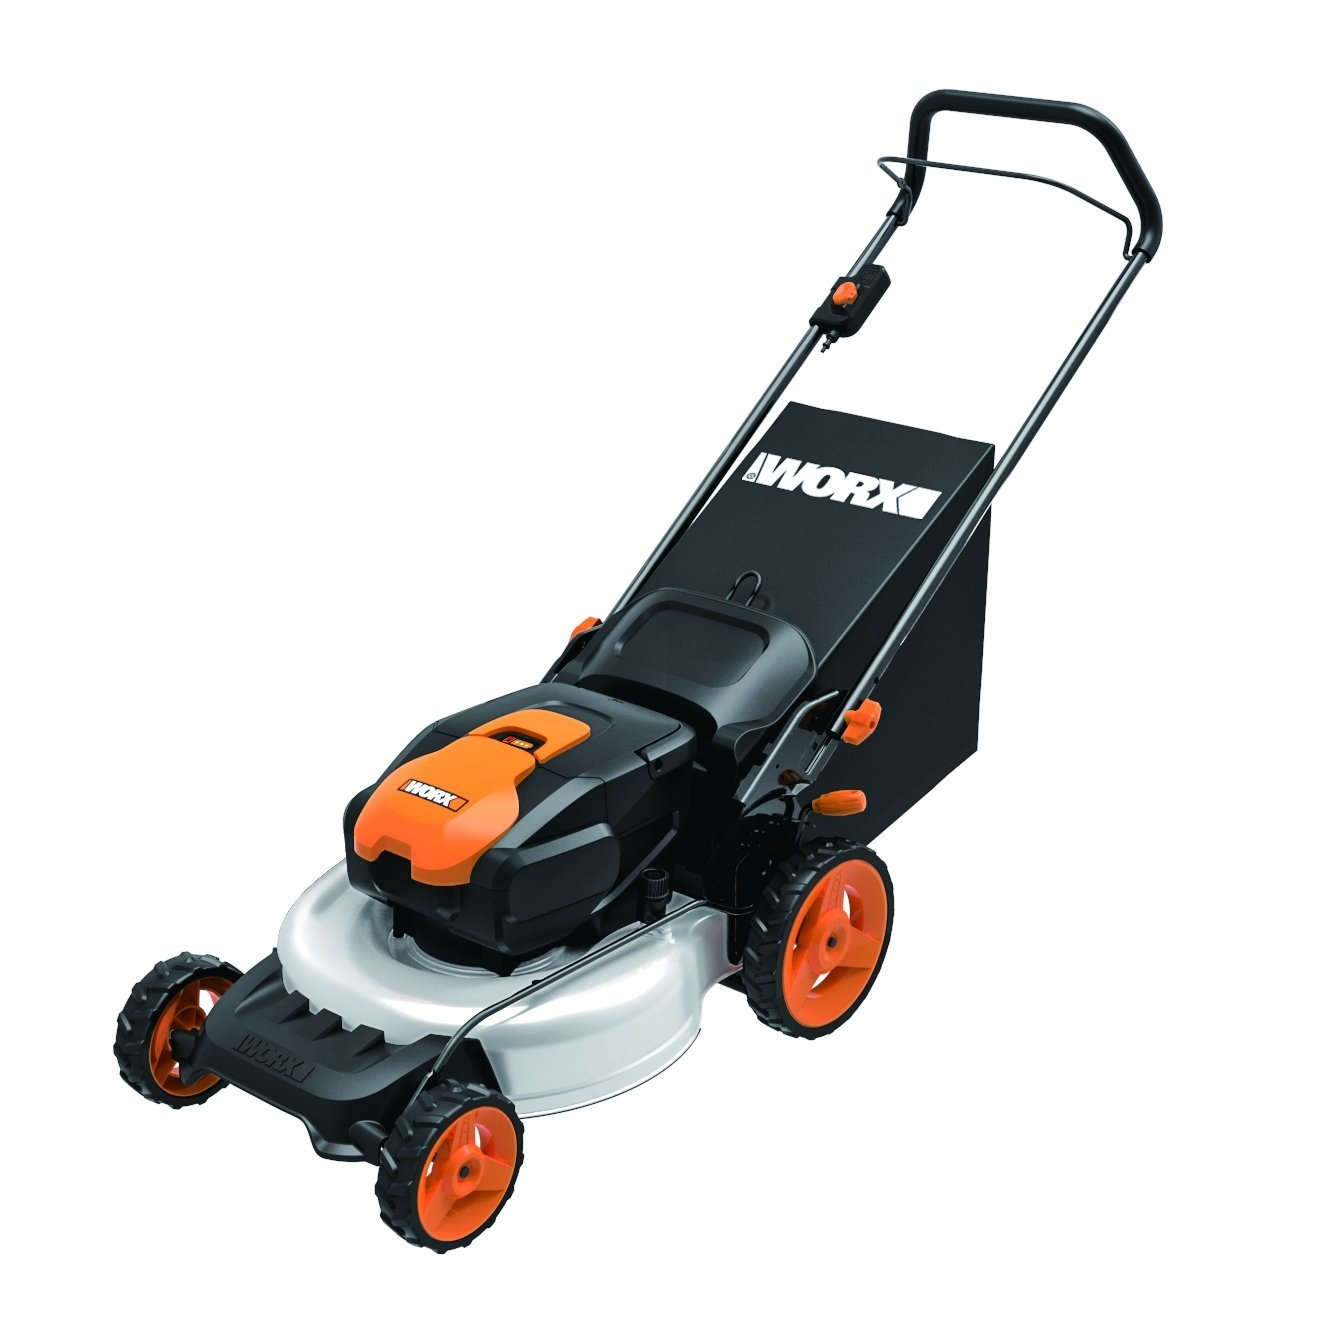 WORX WG770 36V 2-in-1 Cordless Mower with Single Lever De...